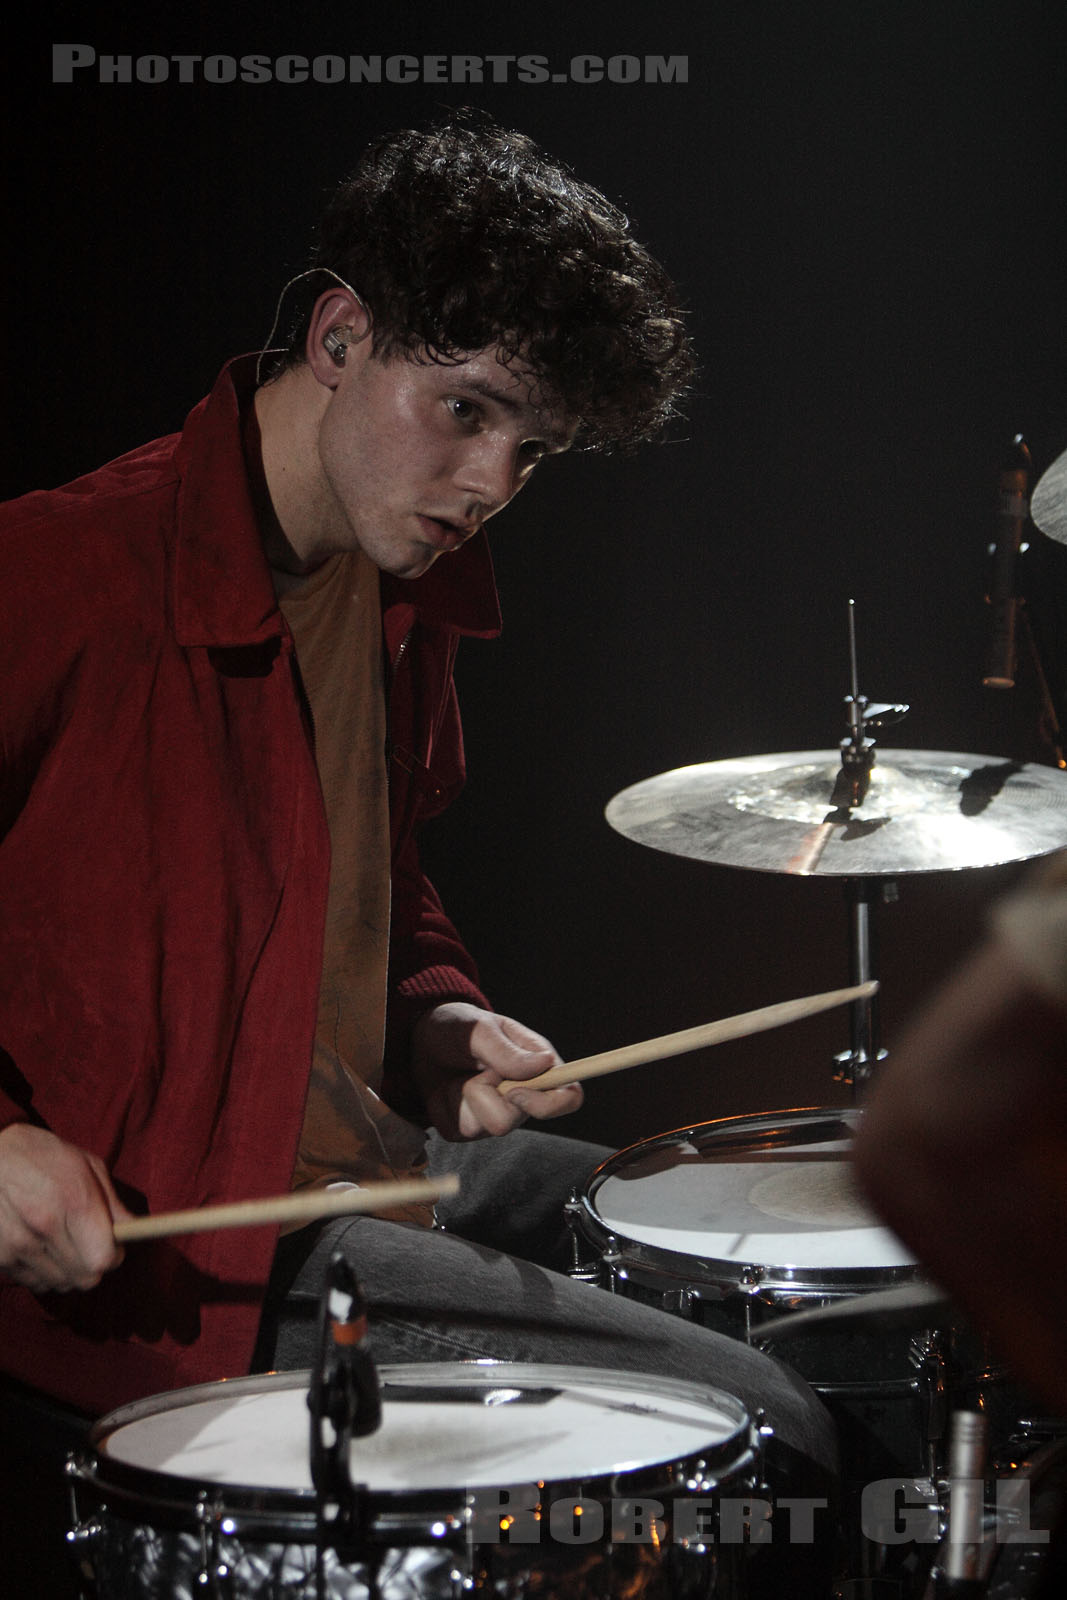 THE DRUMS - 2010-02-25 - PARIS - La Maroquinerie